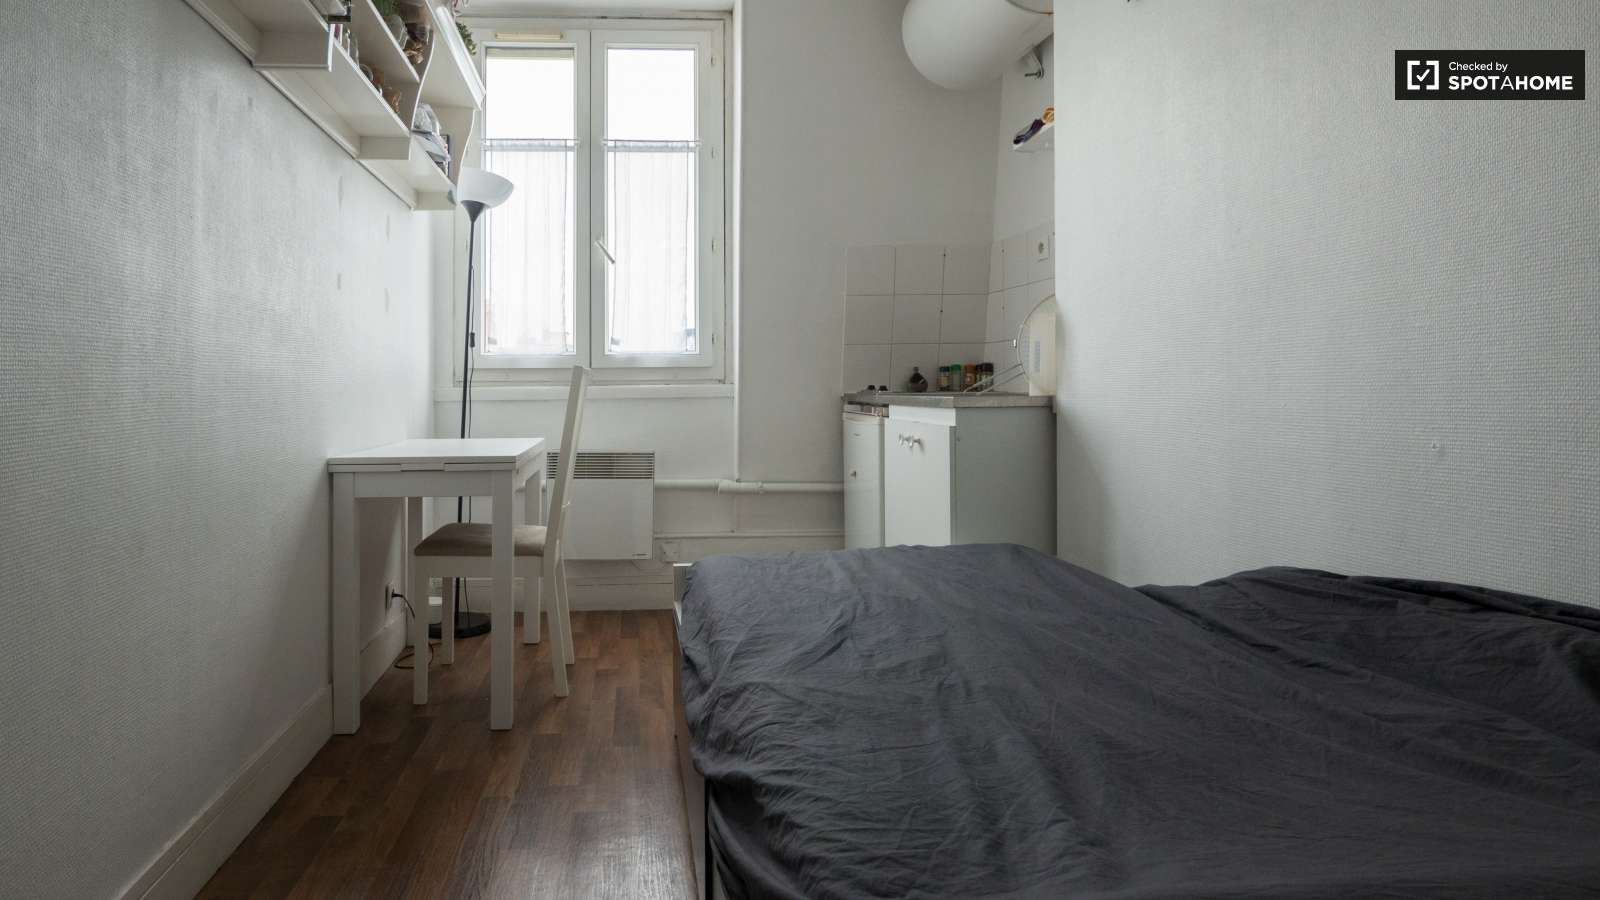 Bright Studio Apartment For Rent In Vaugirard Paris Spotahome